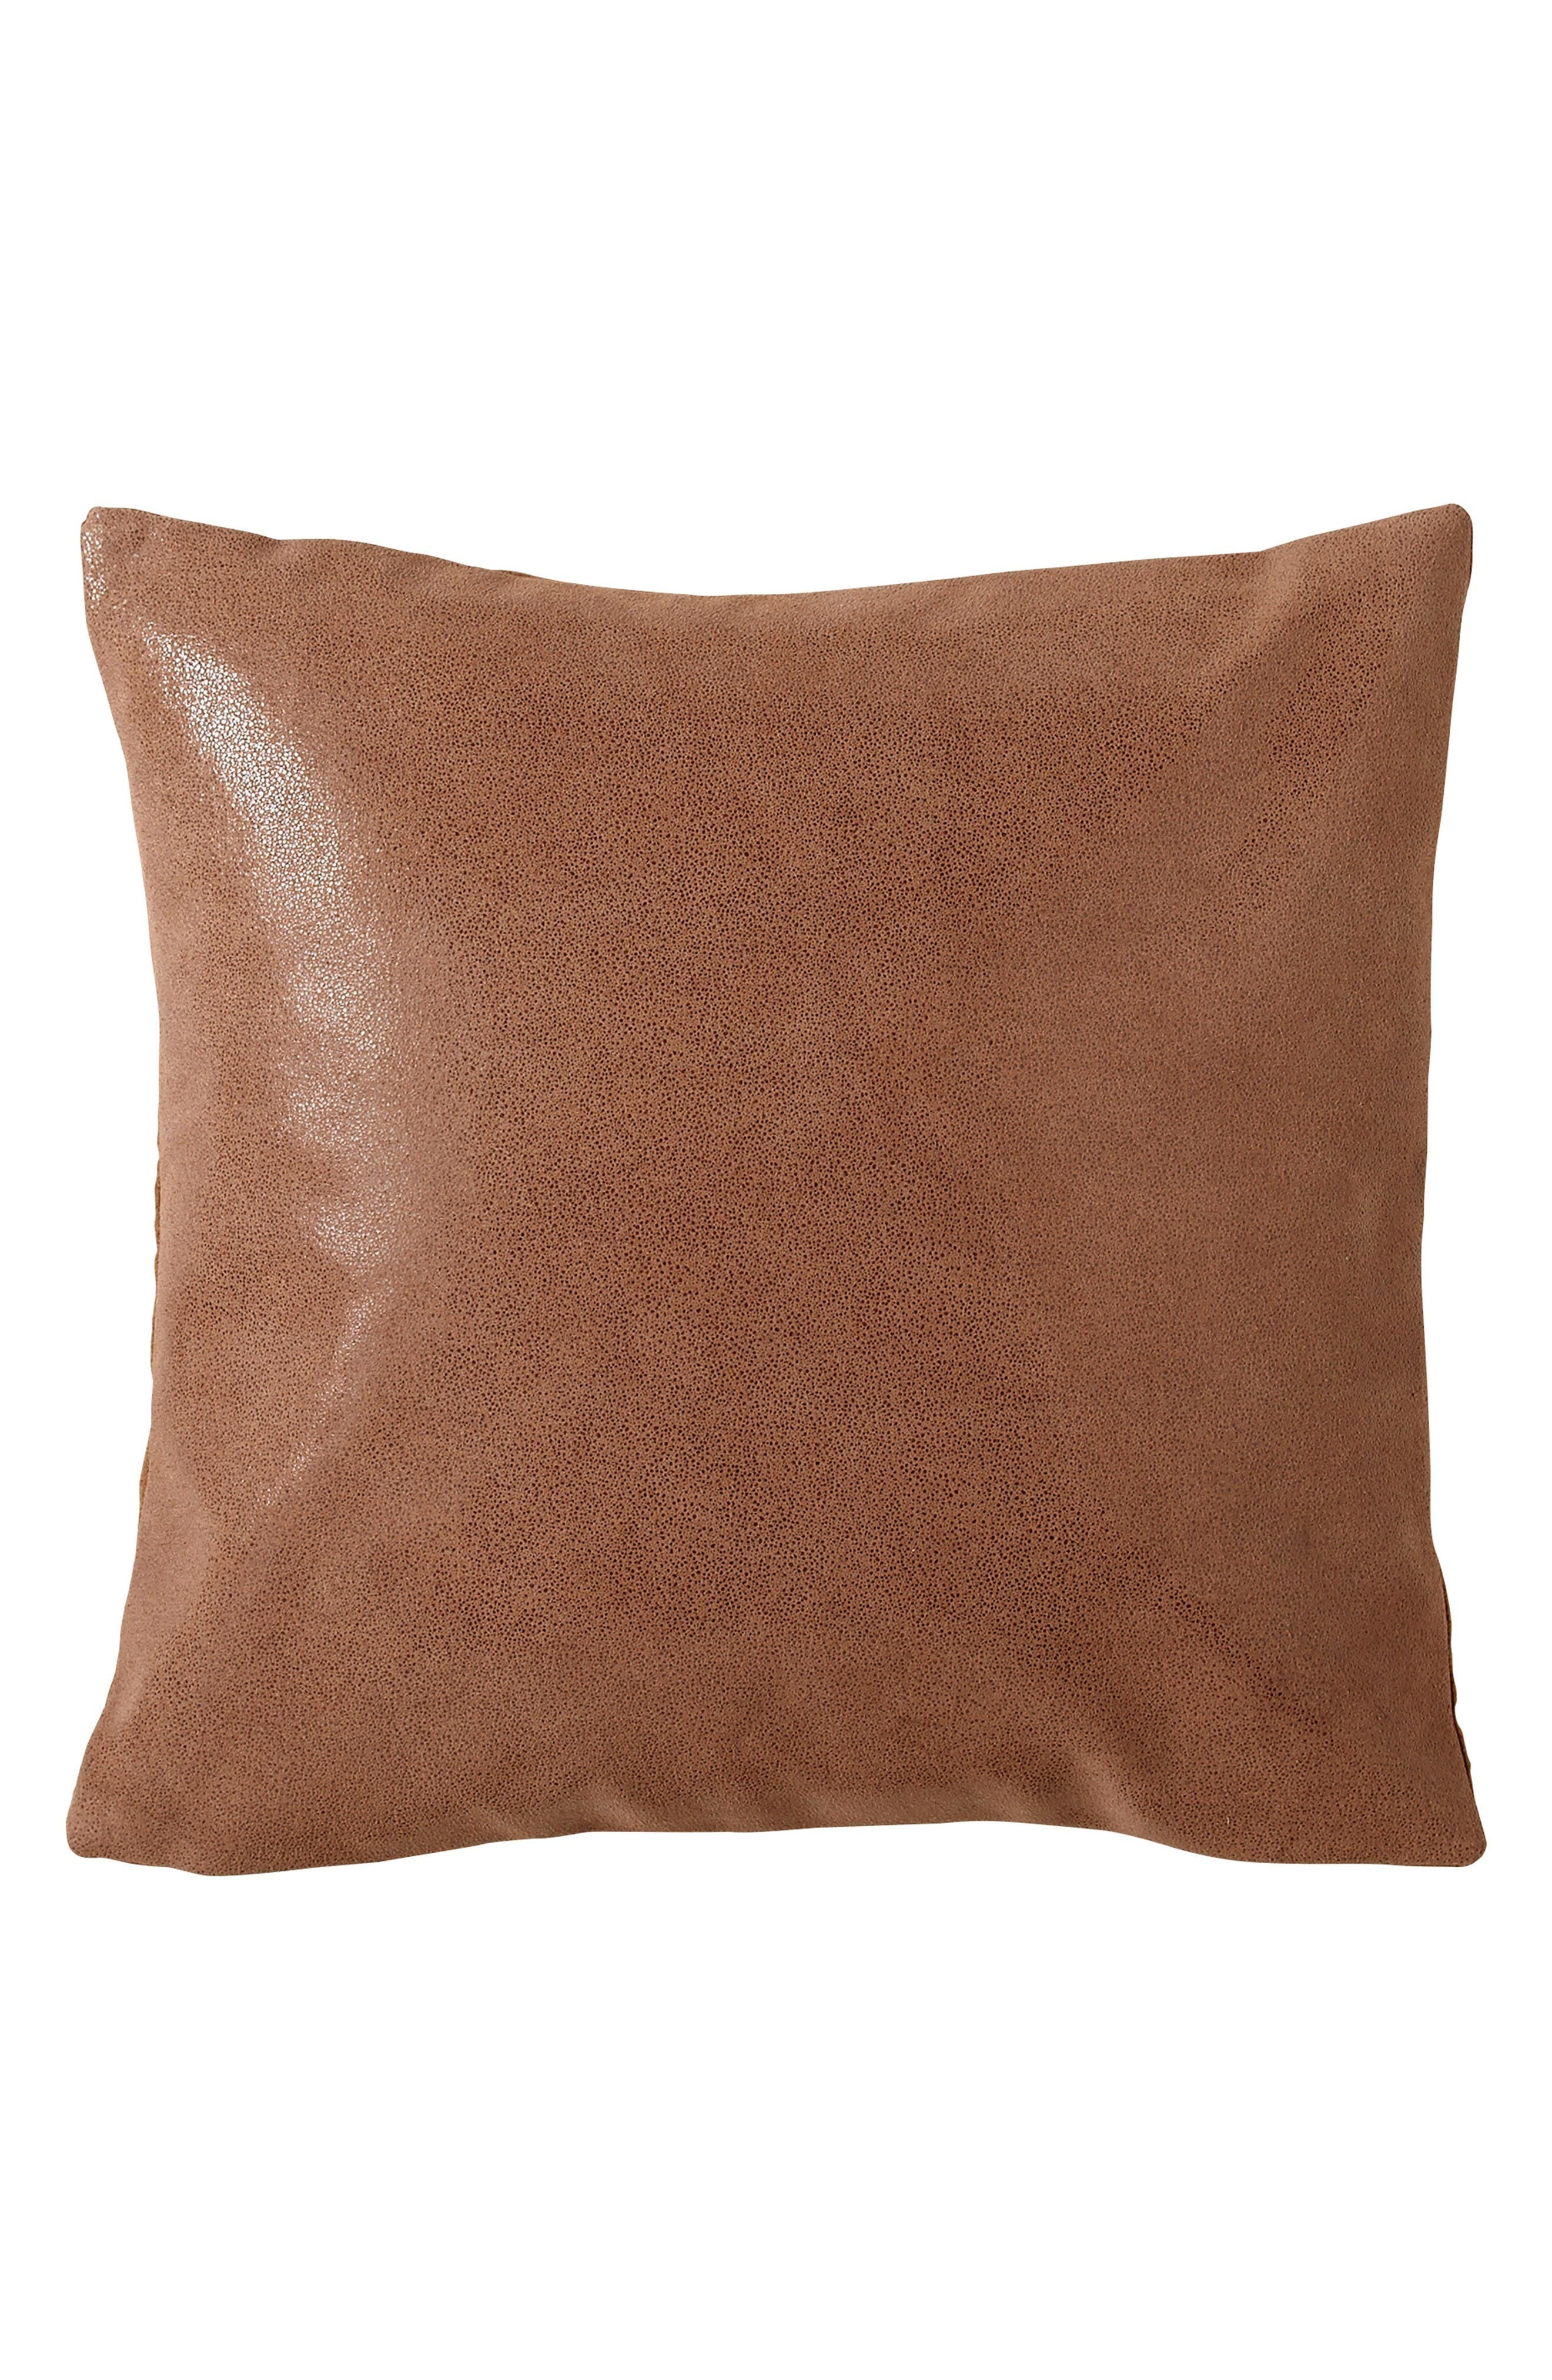 Alternate Image 1 Selected - Donna Karan New York Theory Leather Accent Pillow